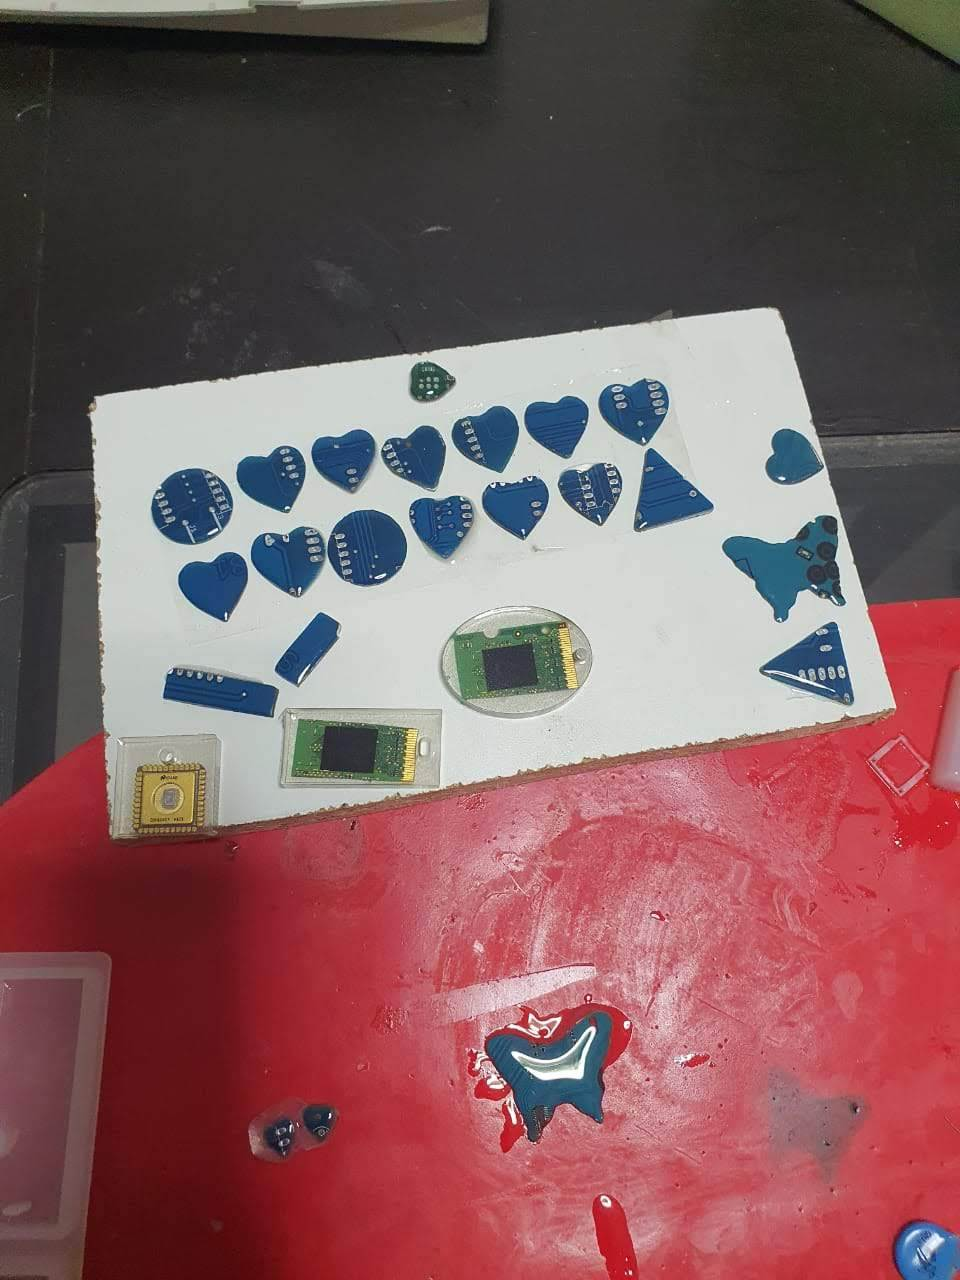 Cover the Pieces With Resin